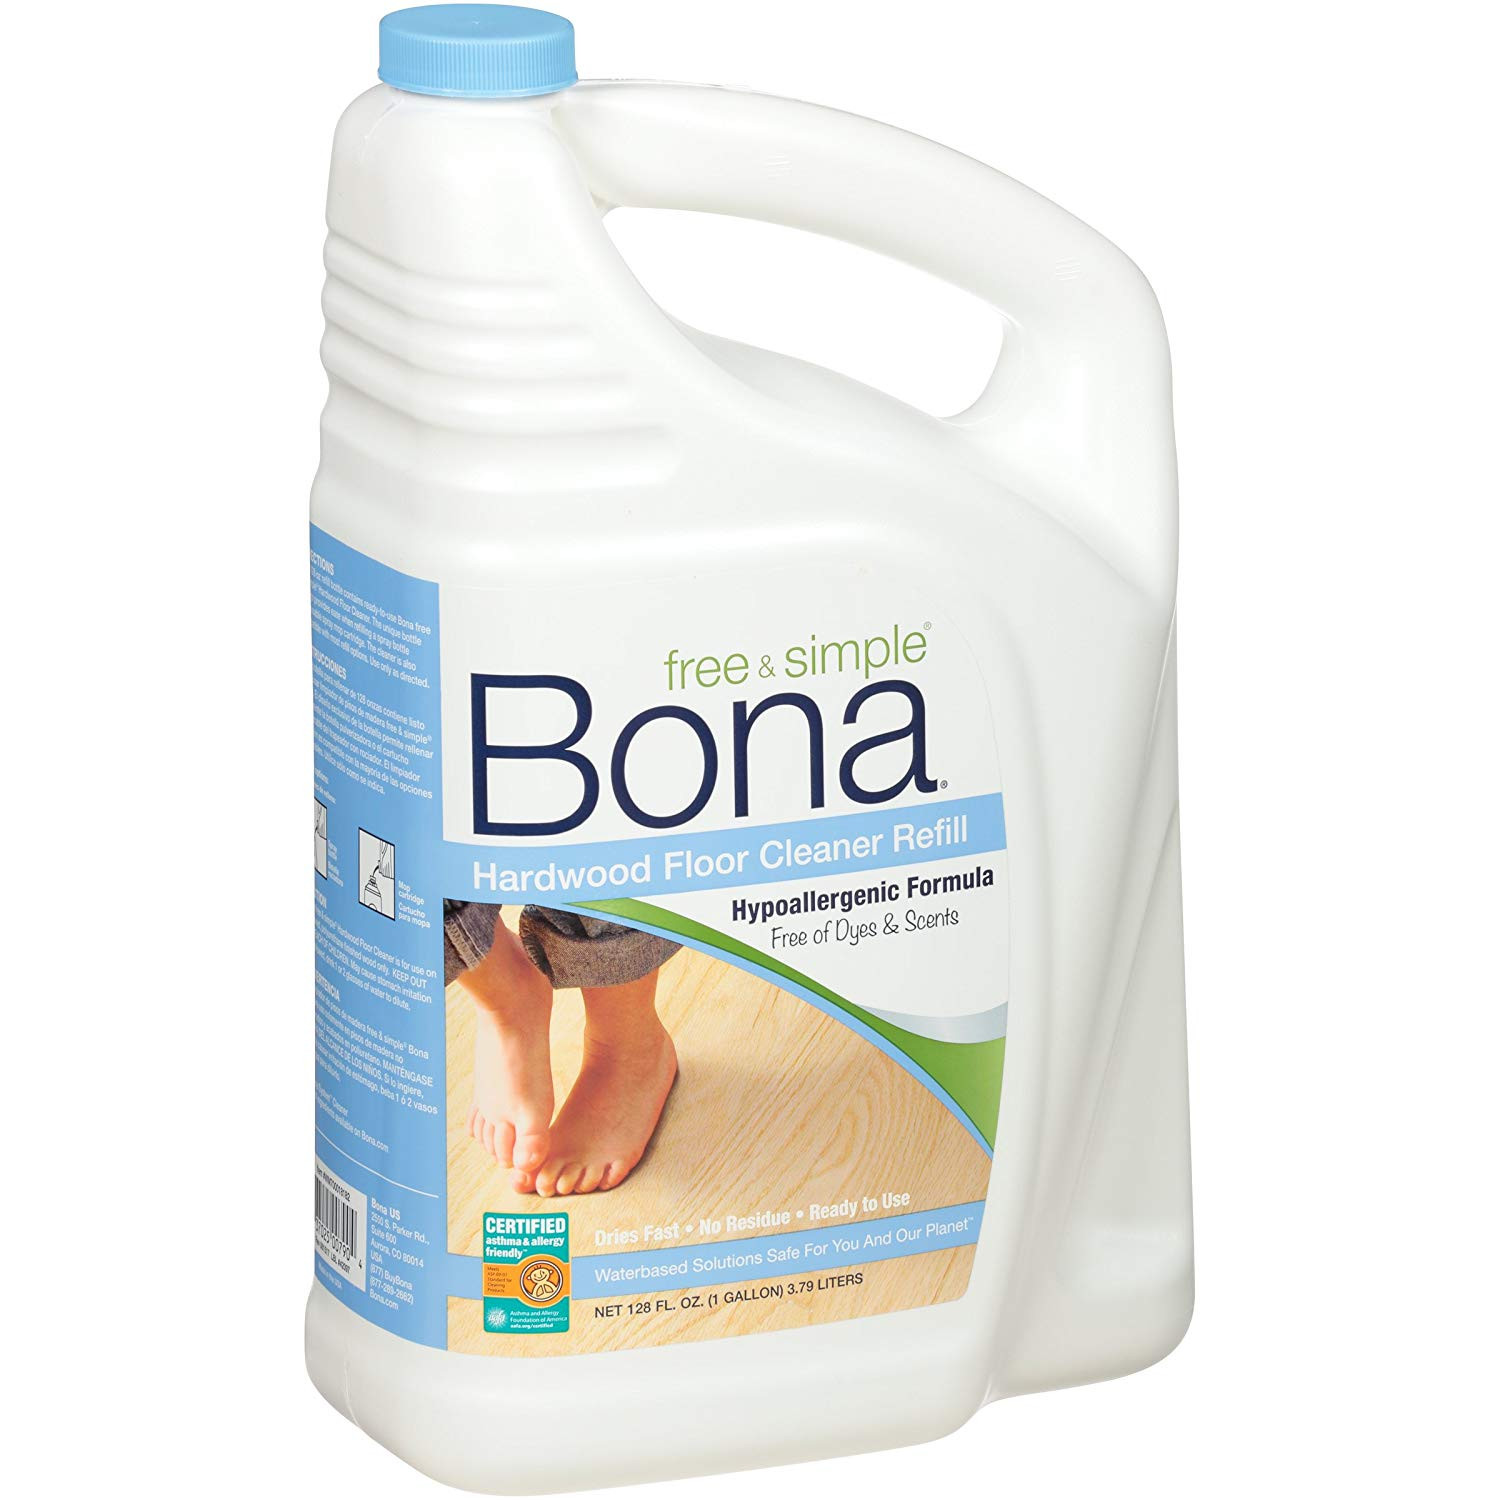 hardwood floor cleaner for scratches of amazon com bona wm700018182 free simple hardwood floor cleaner throughout amazon com bona wm700018182 free simple hardwood floor cleaner refill 128 oz health personal care